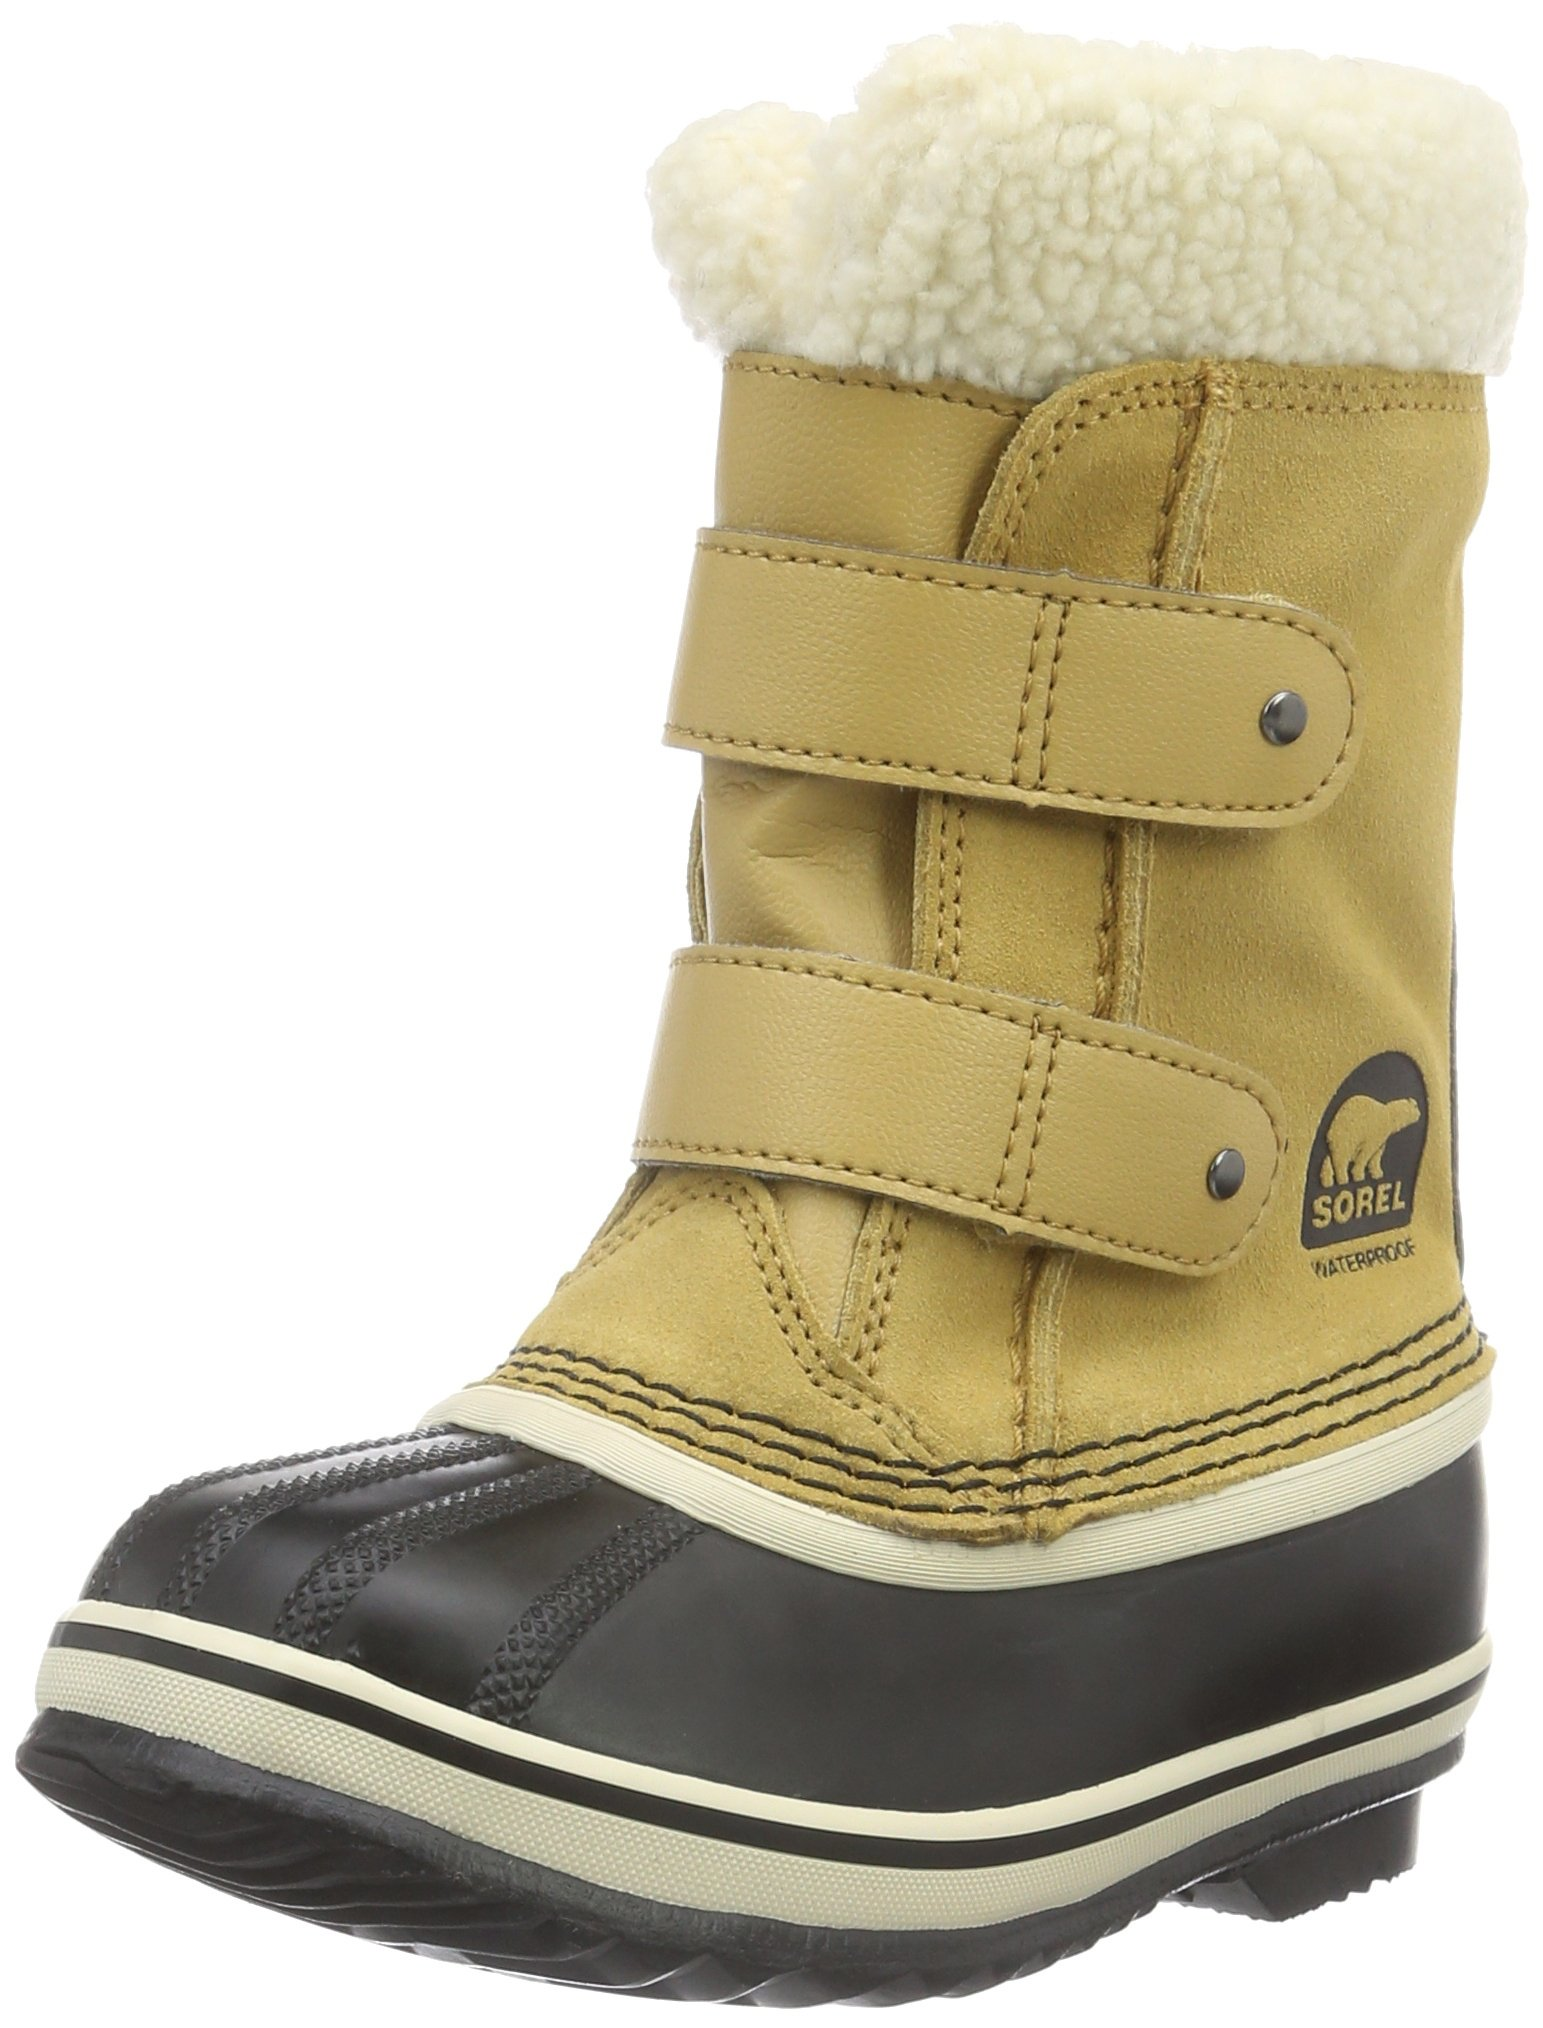 Sorel Childrens 1964 Pac Strap Snow Boot, Green - 13 M US Little Kid